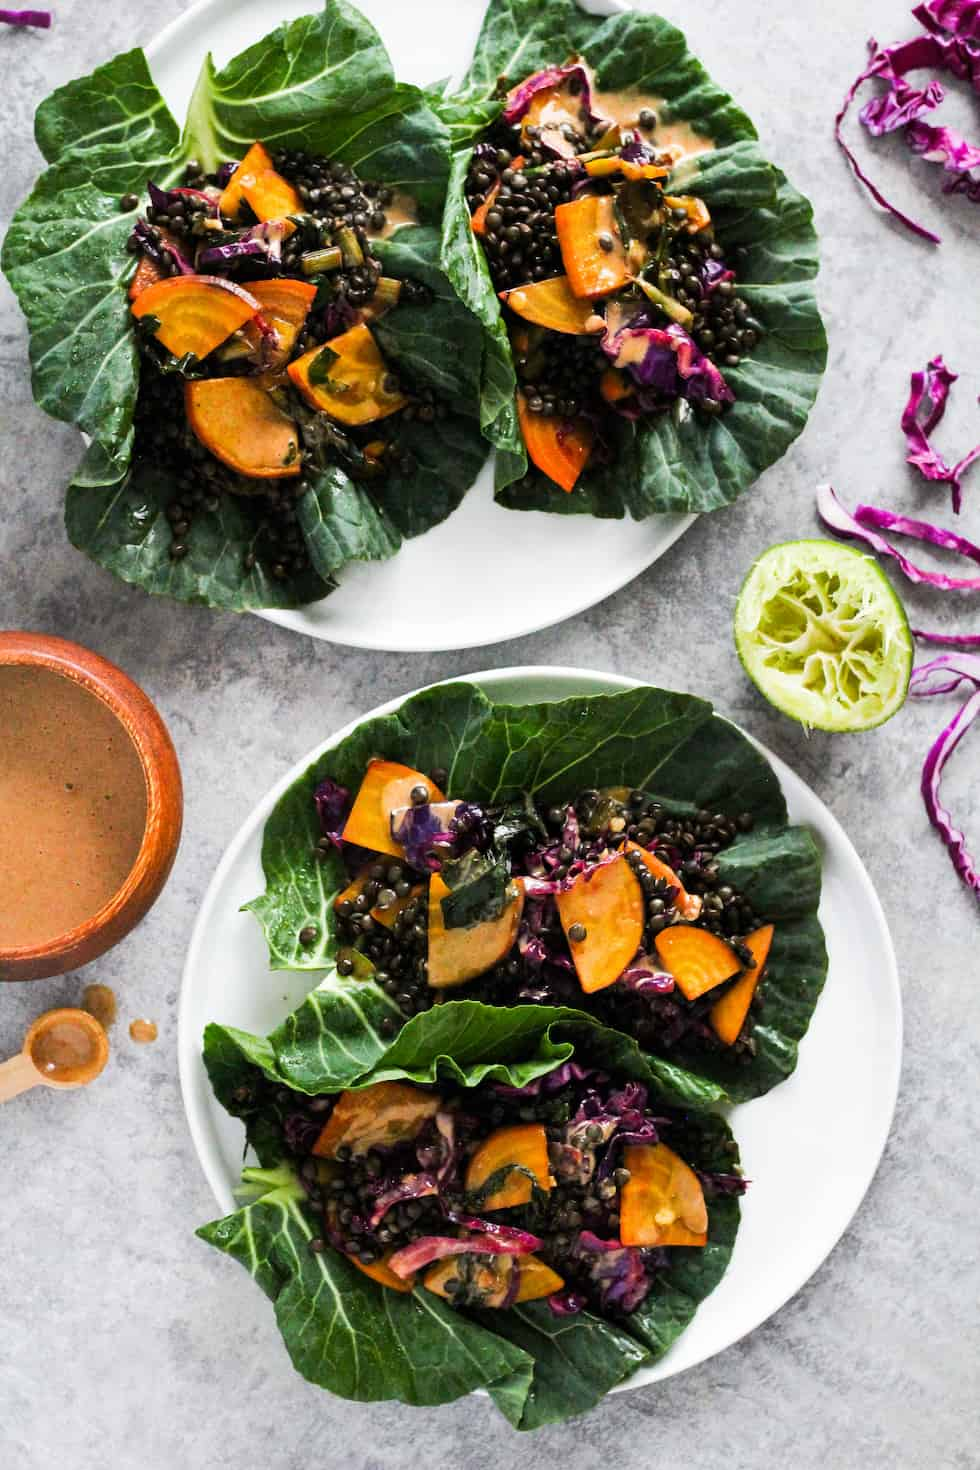 Black lentil collard wraps on white plates with almond sauce and shredded purple cabbage.